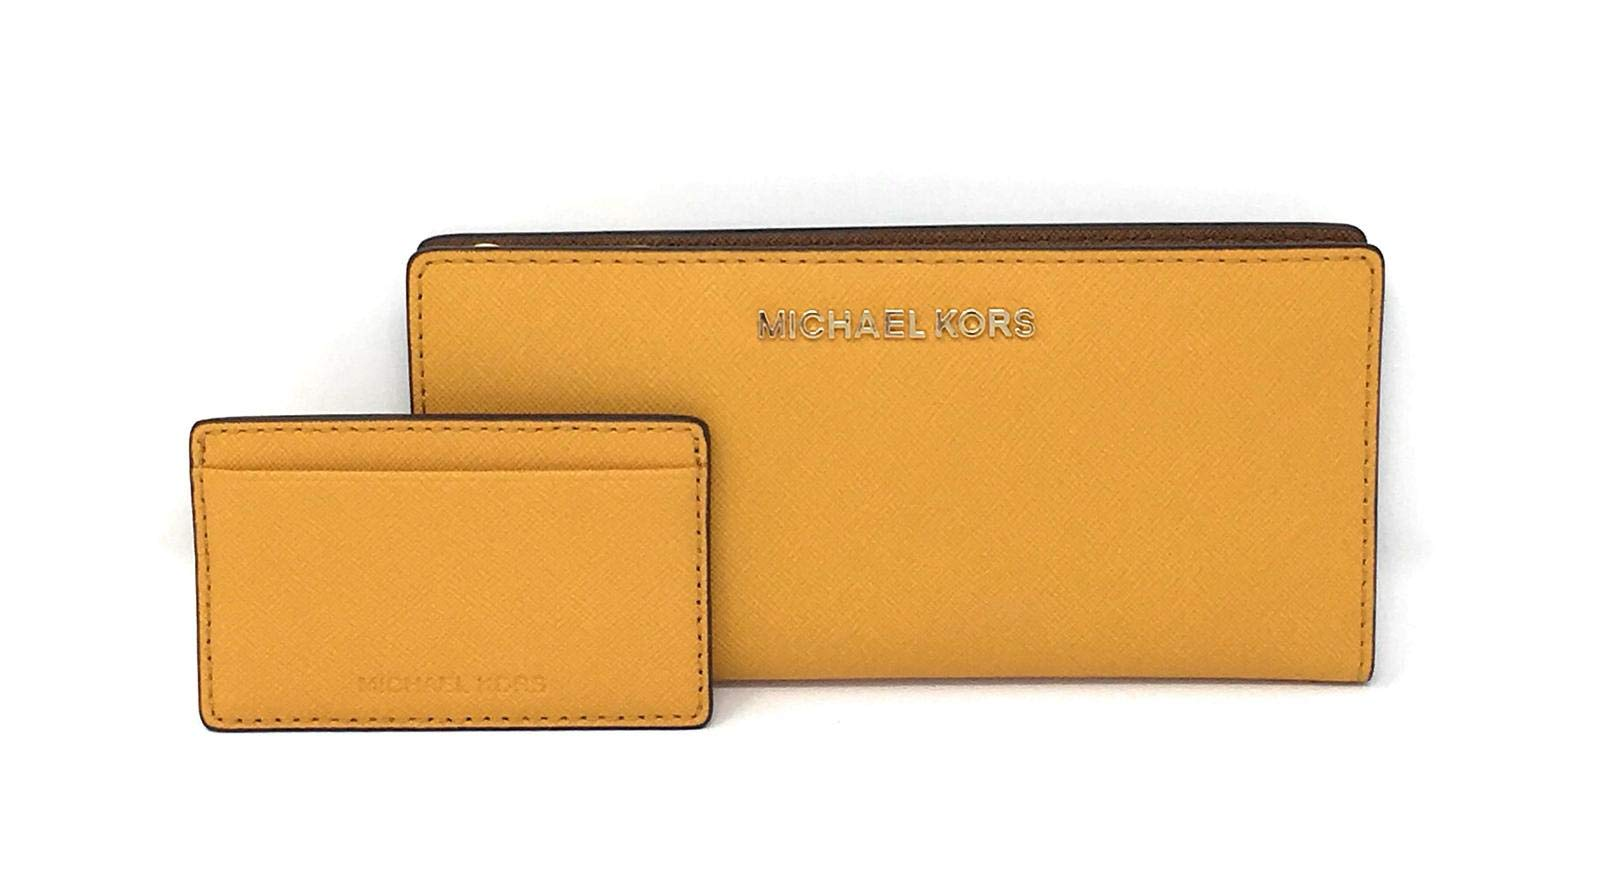 Michael Kors Jet Set Travel Leather Medium Large Card Case Carryall Wallet with Removable ID Card Holder (Marigold/Luggage)